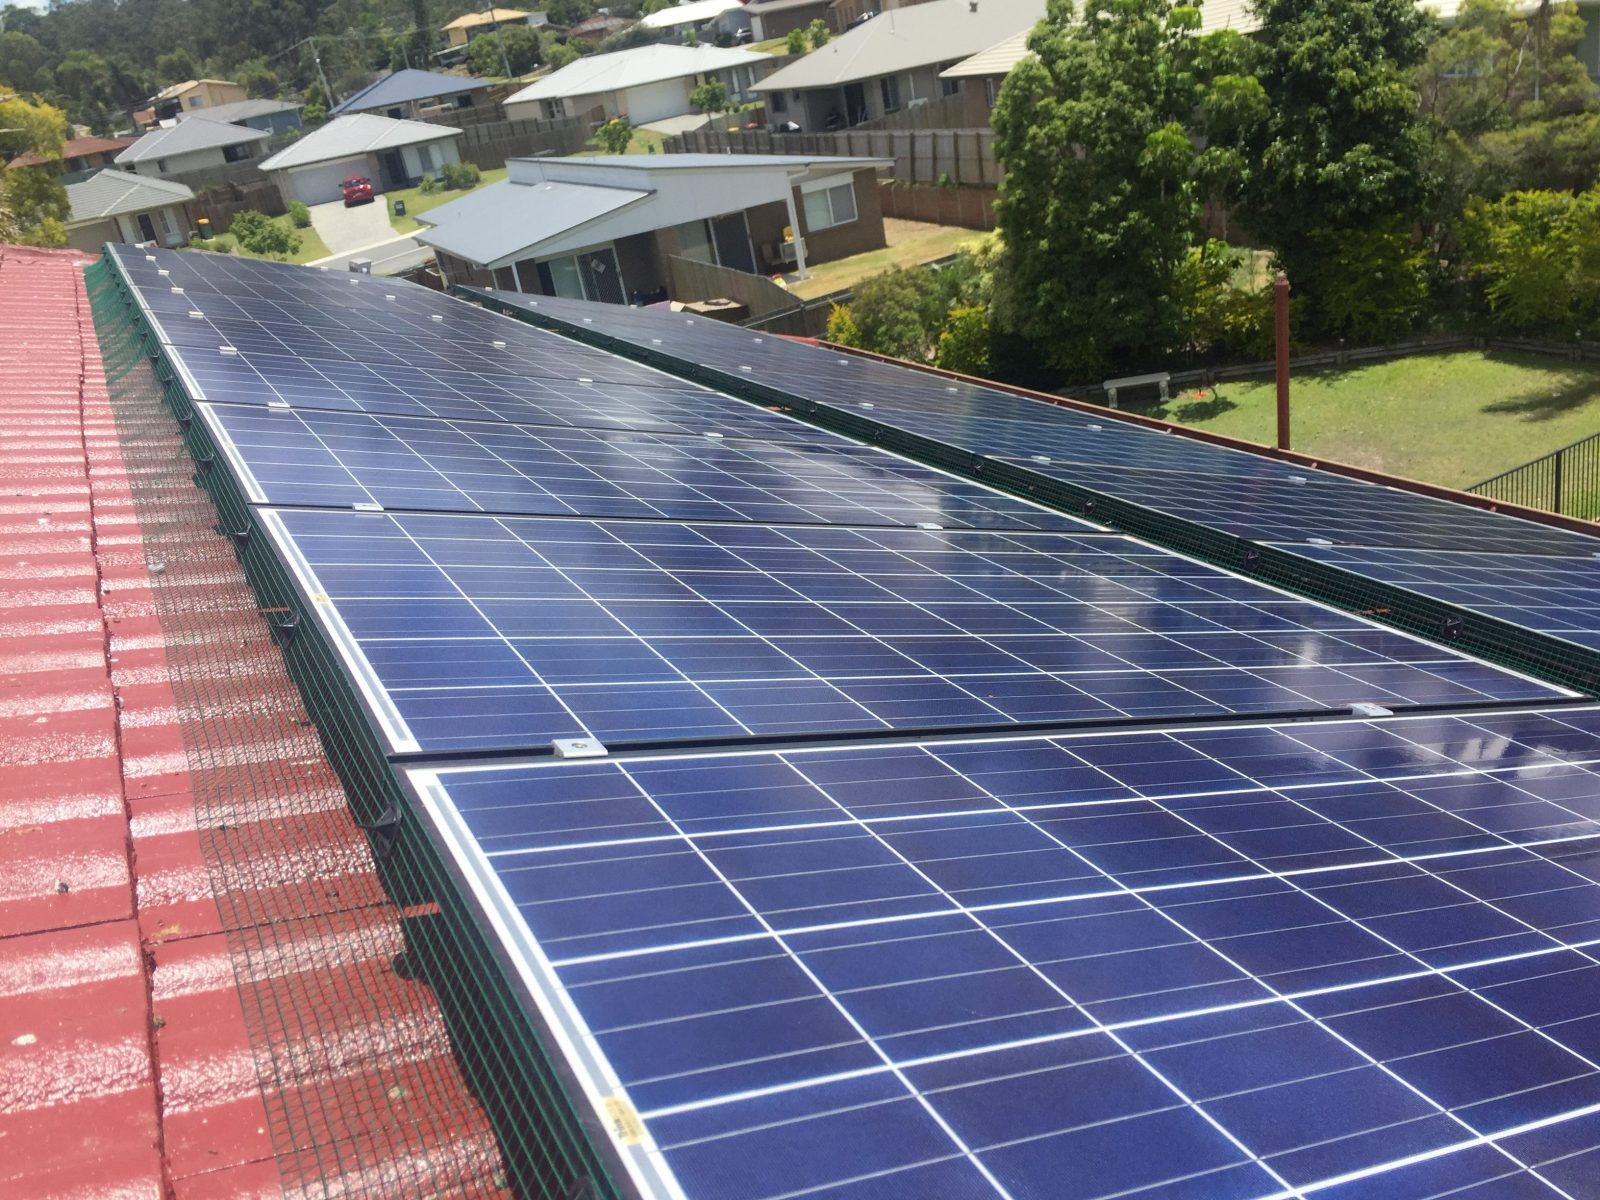 Bird Proofing Solar Pigeon Proofing Solar Panels I